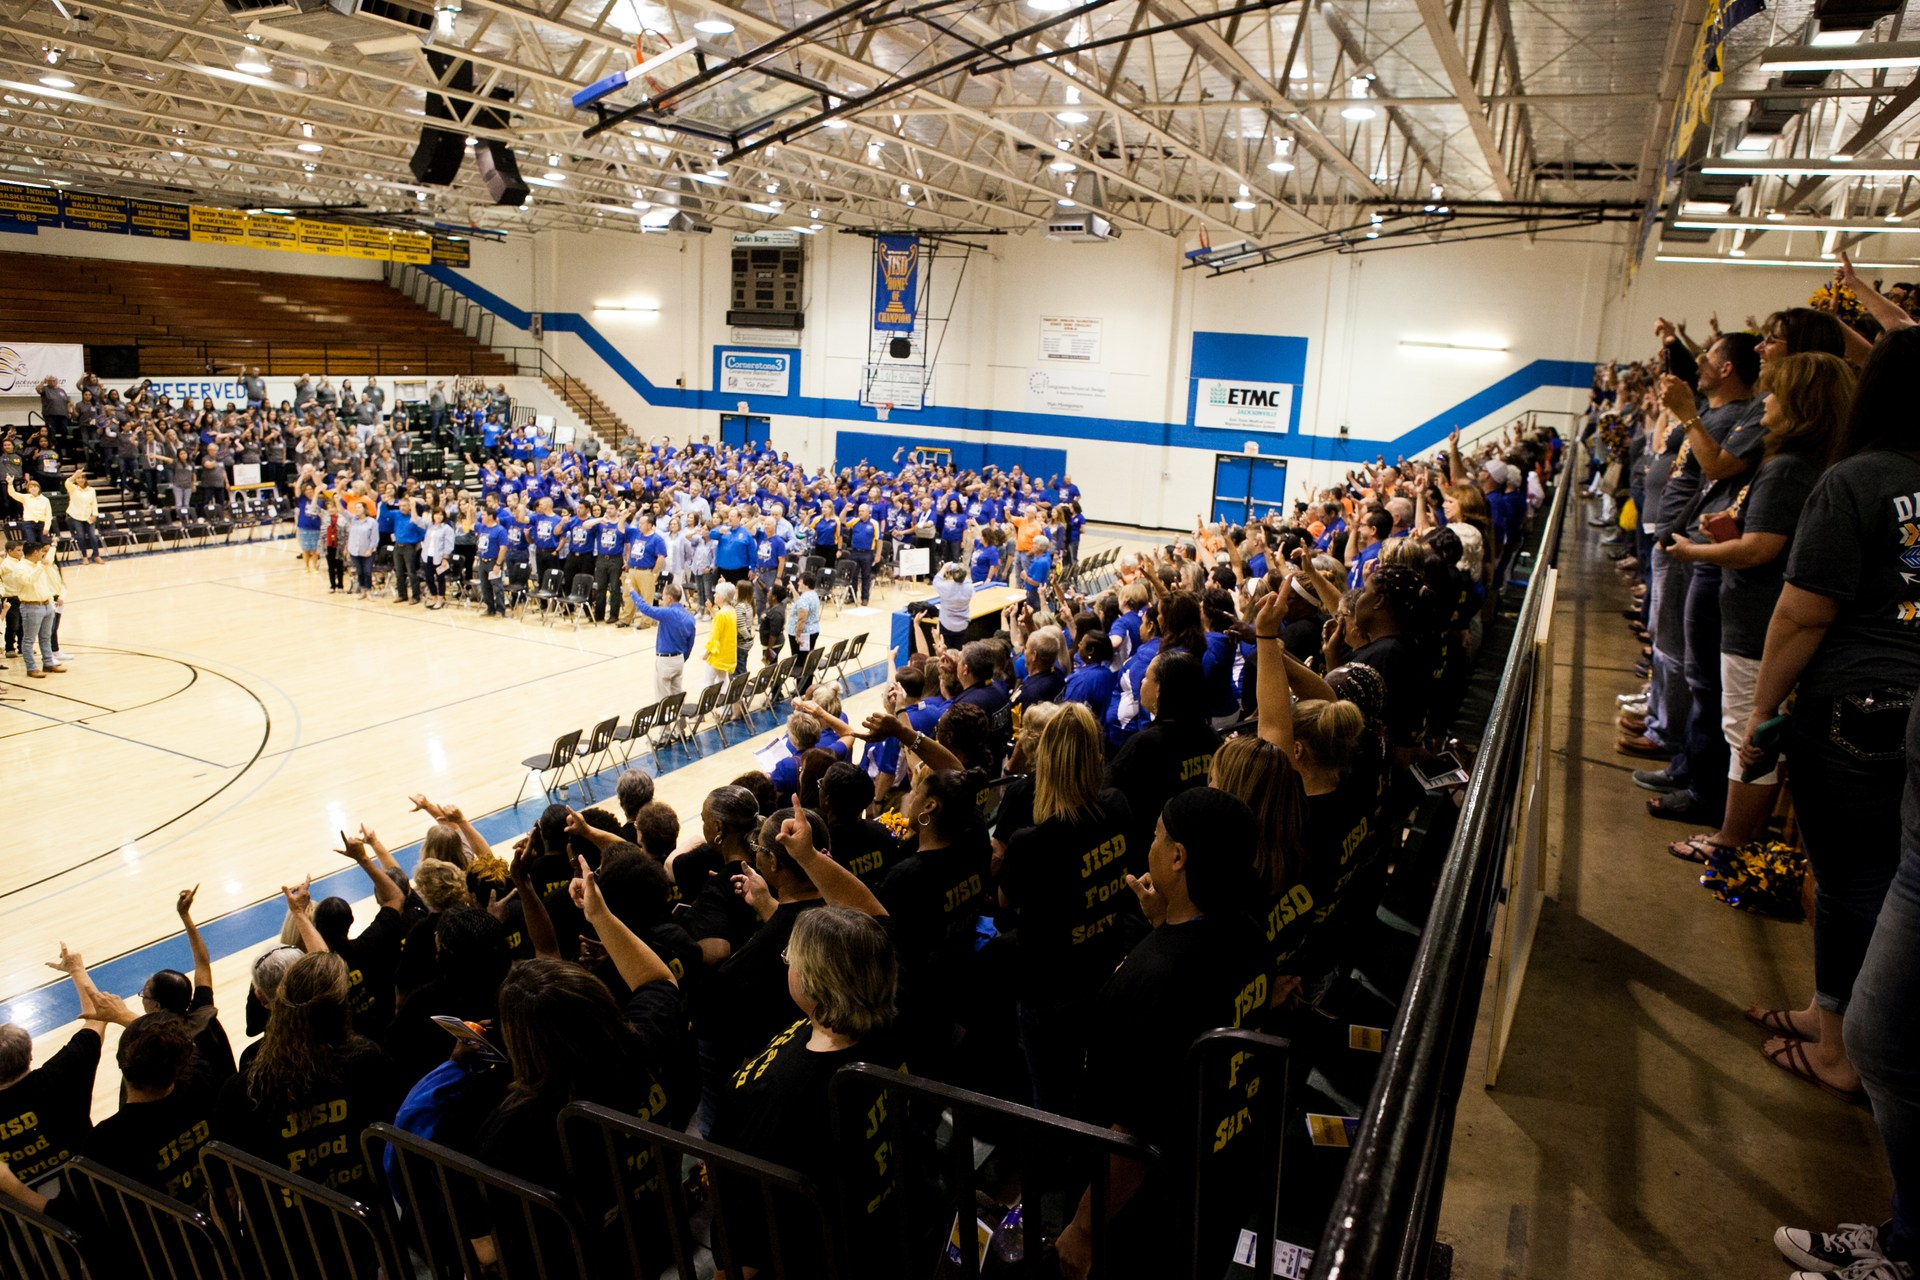 Picture of JISD principals and Superintendent f gym floor at convocation